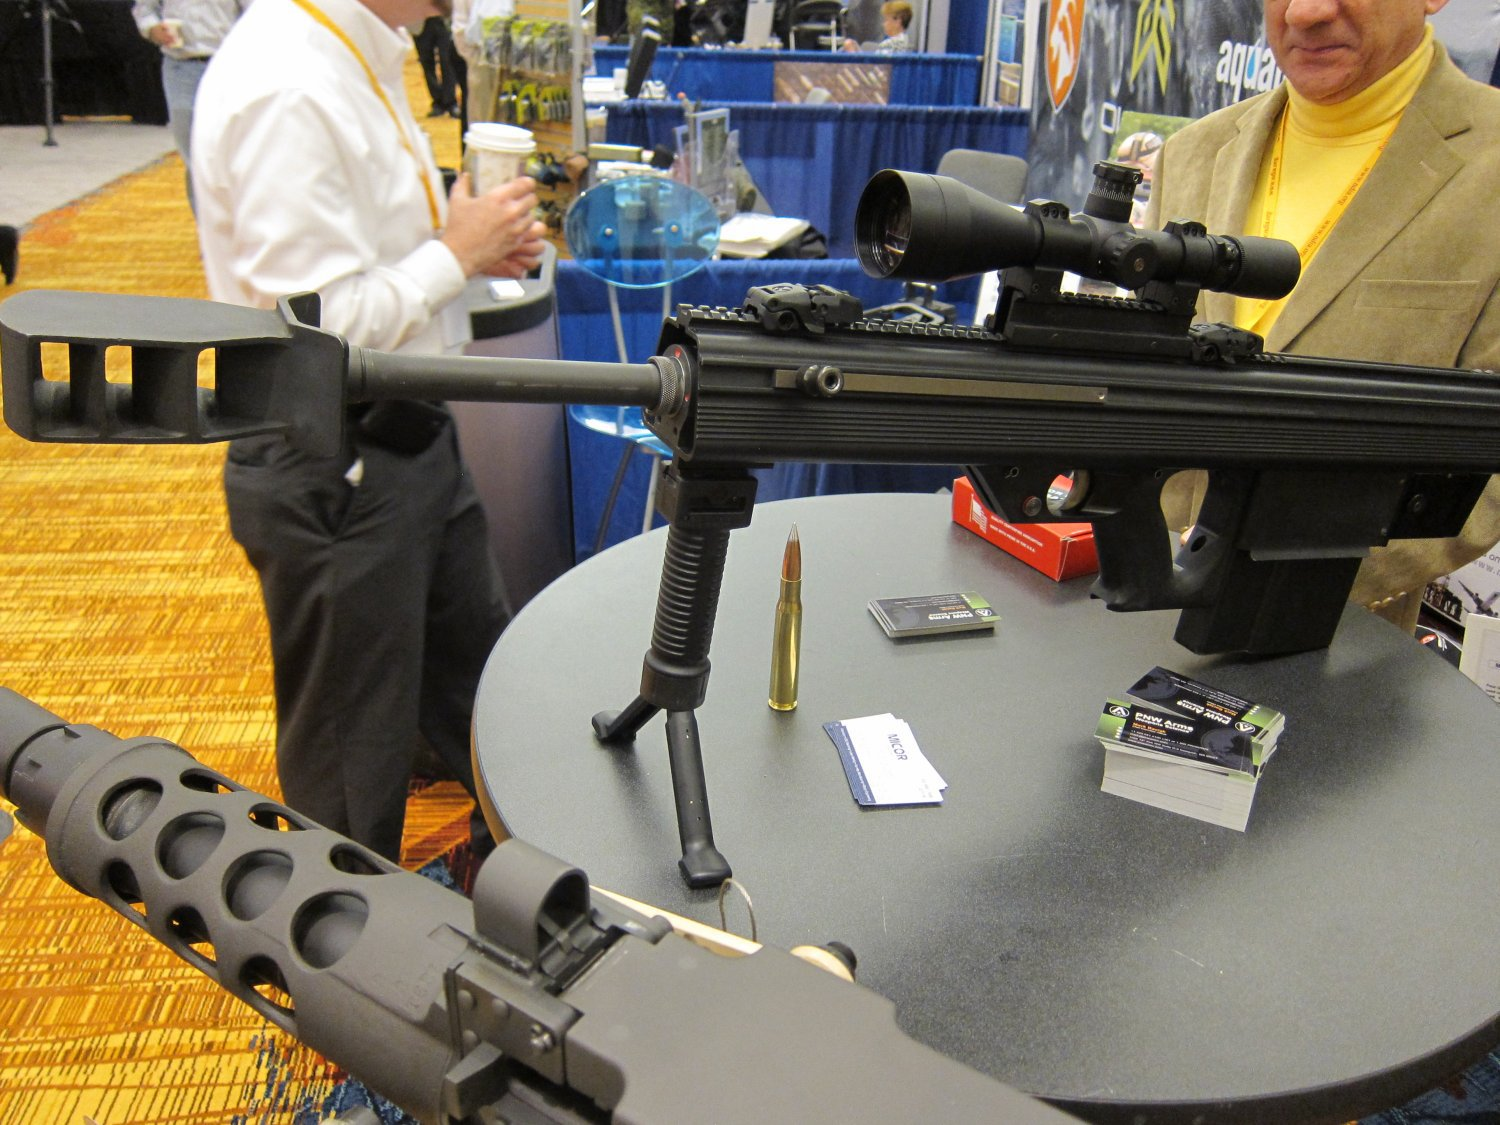 Micor Leader 50 Lightweight Bullpup Semi Auto .50 BMG Sniper Anti Materiel Rifle NDIA Small Arms Symposium 2011 DefenseReview.com DR 3 <!  :en  >MICOR Defense Leader 50 Ultra Compact, Lightweight Bullpup Semi Auto .50 BMG (12.7x99mm NATO) Sniper/Anti Materiel Rifle and PNW Arms Weapons Science .50BMG Ammo at NDIA Infantry Small Arms Systems Symposium 2011: Potential Long Range Lethality Game Changer Combo for 21st Century Infantry Warfare (Photos and Video!)<!  :  >